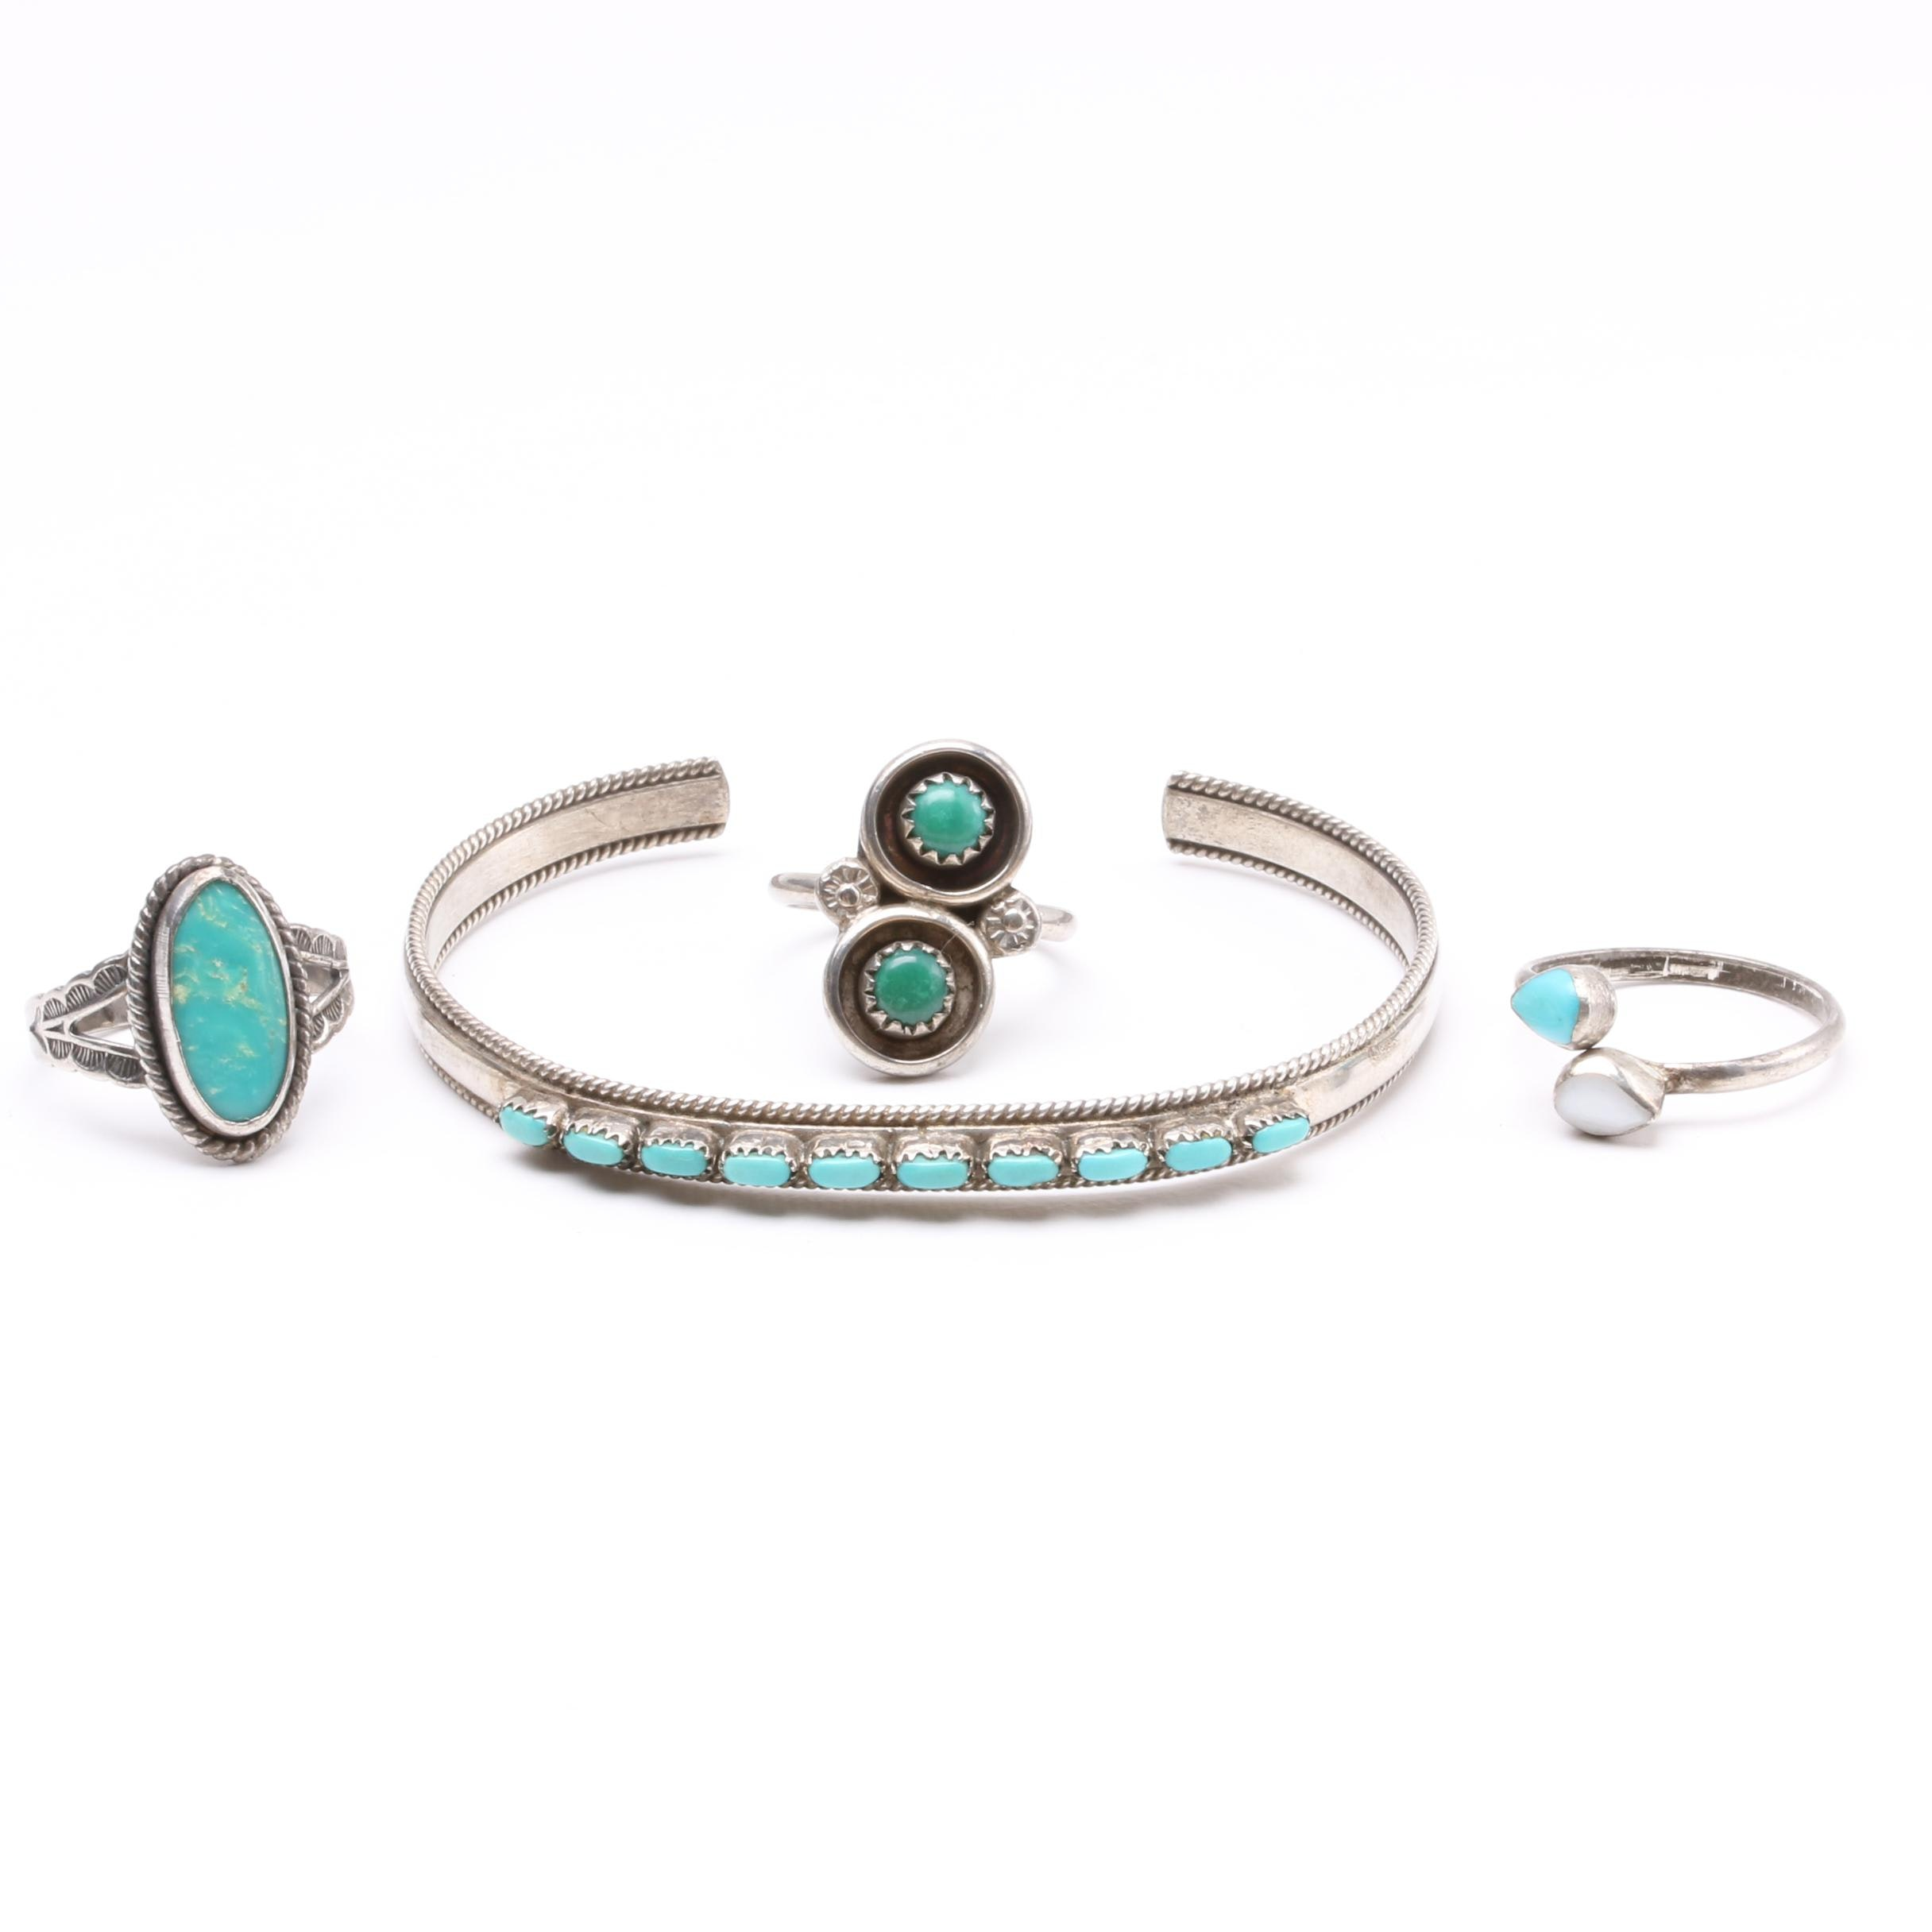 Southwestern Style Sterling Silver Jewelry Including Turquoise